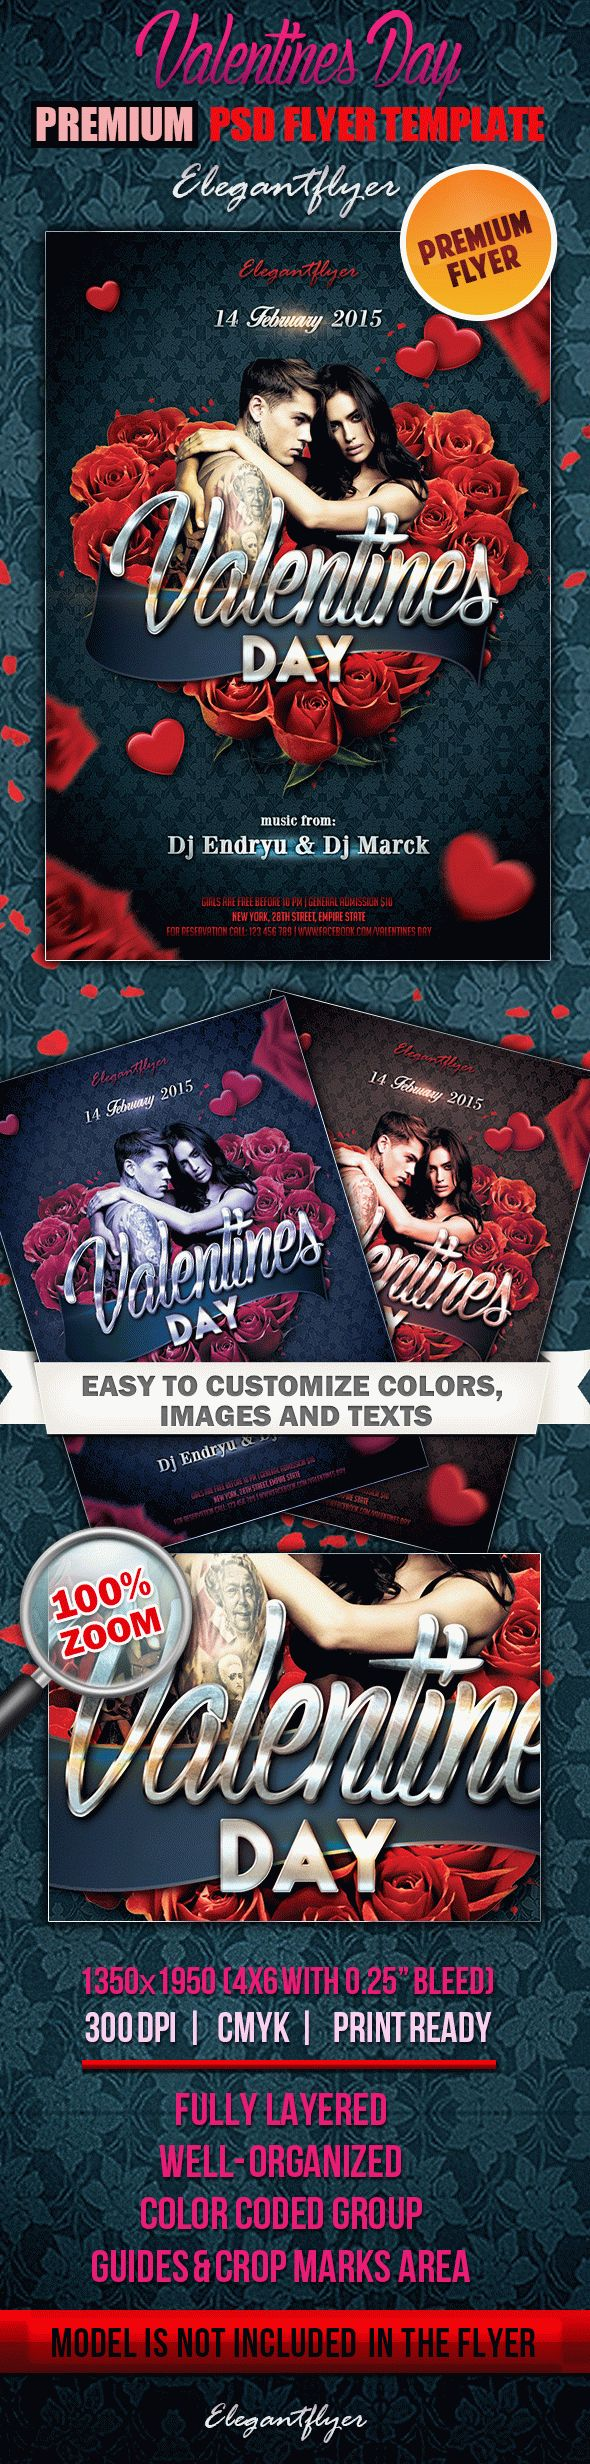 Valentines Day 4 – Premium Club flyer PSD Template